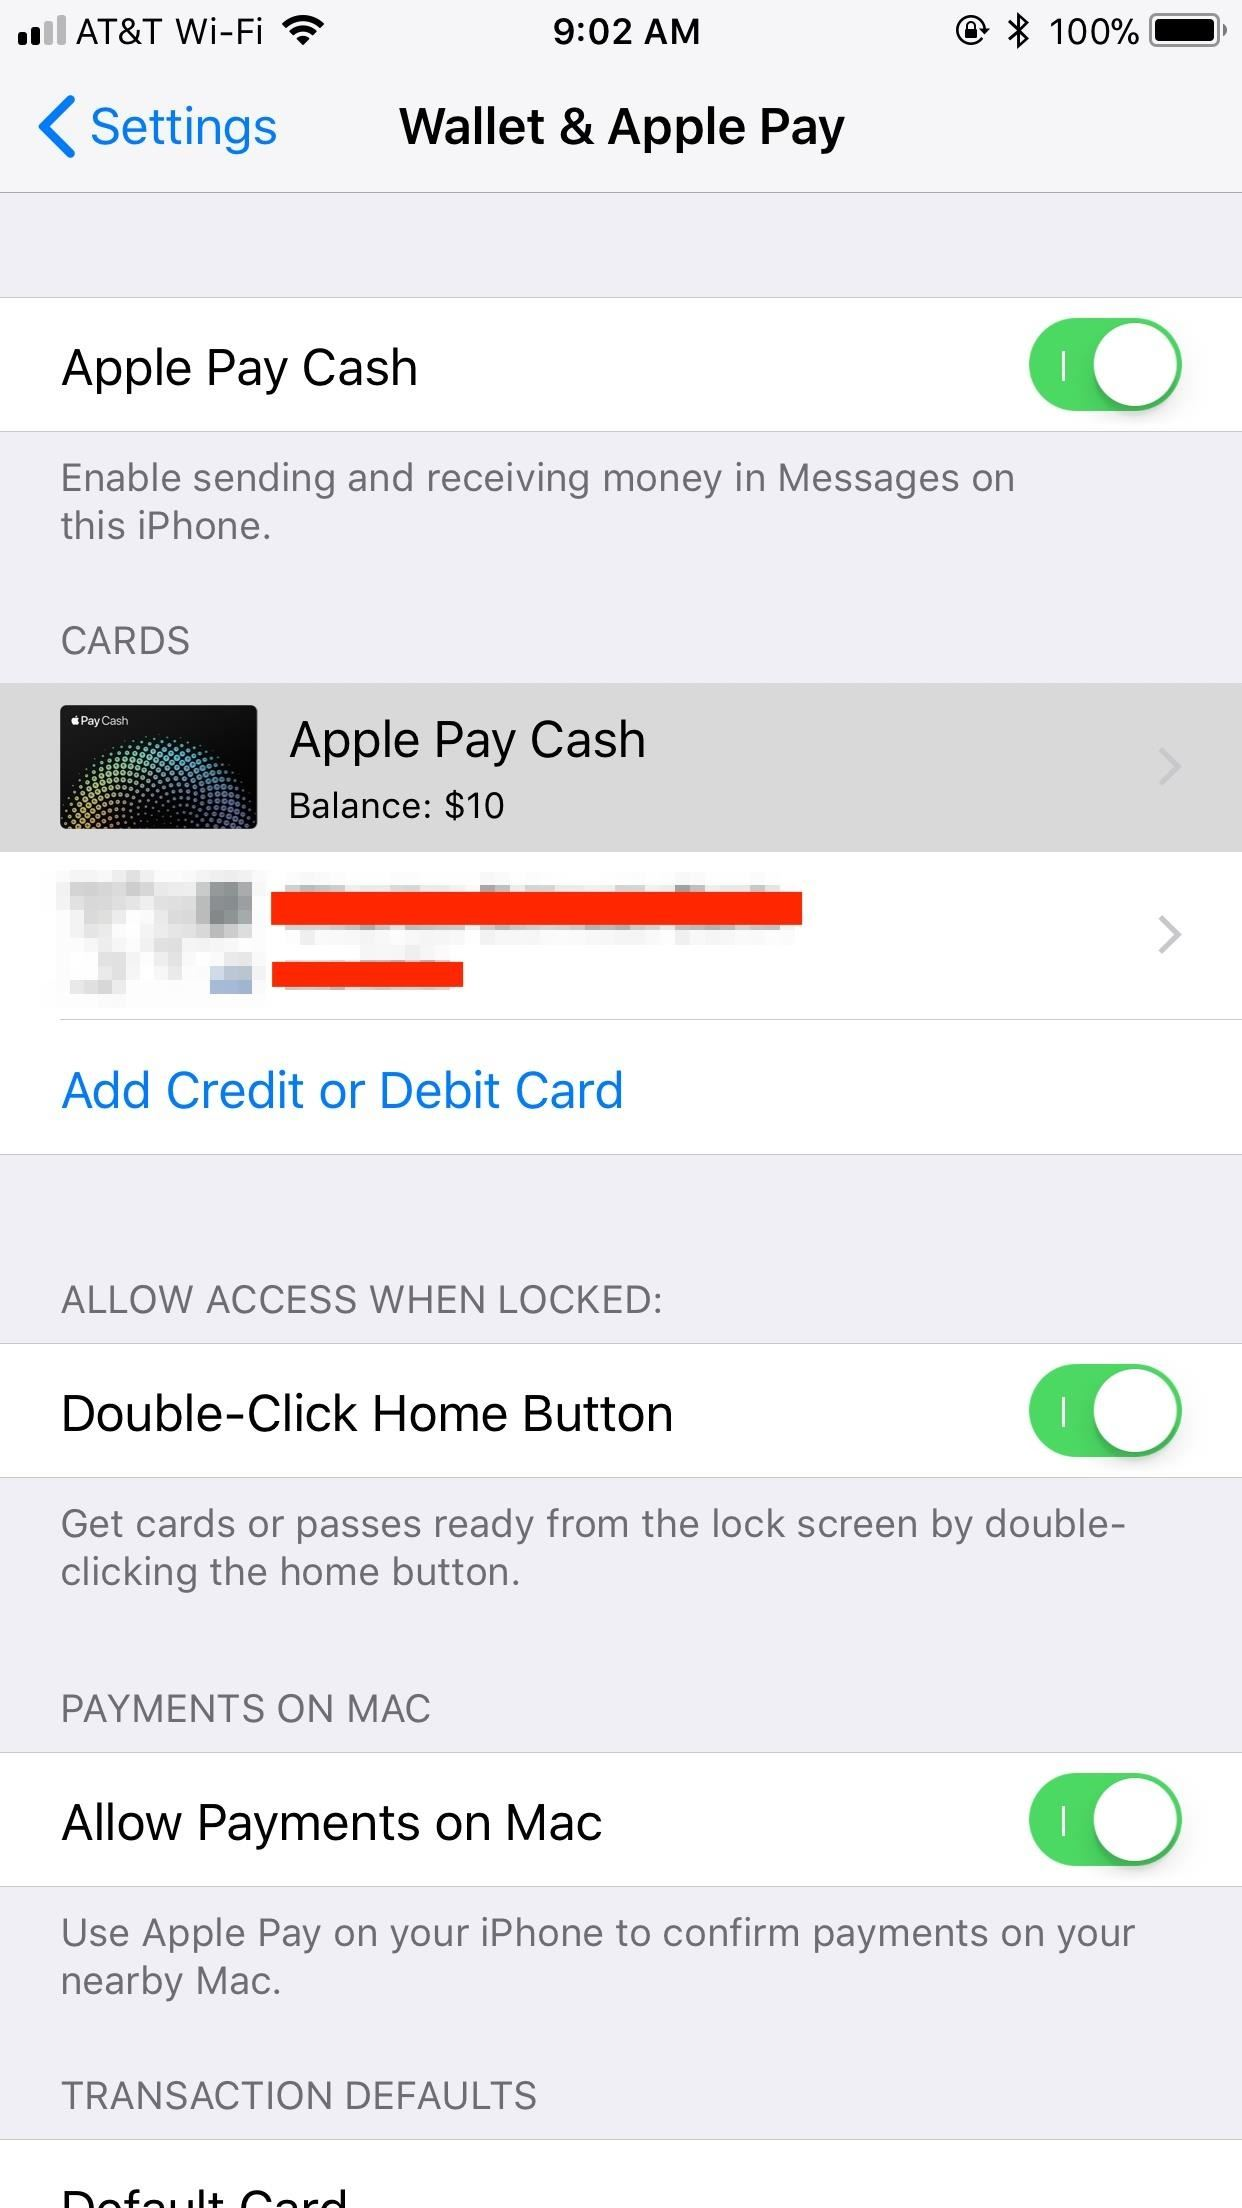 Apple Pay Cash and person to person payments now available